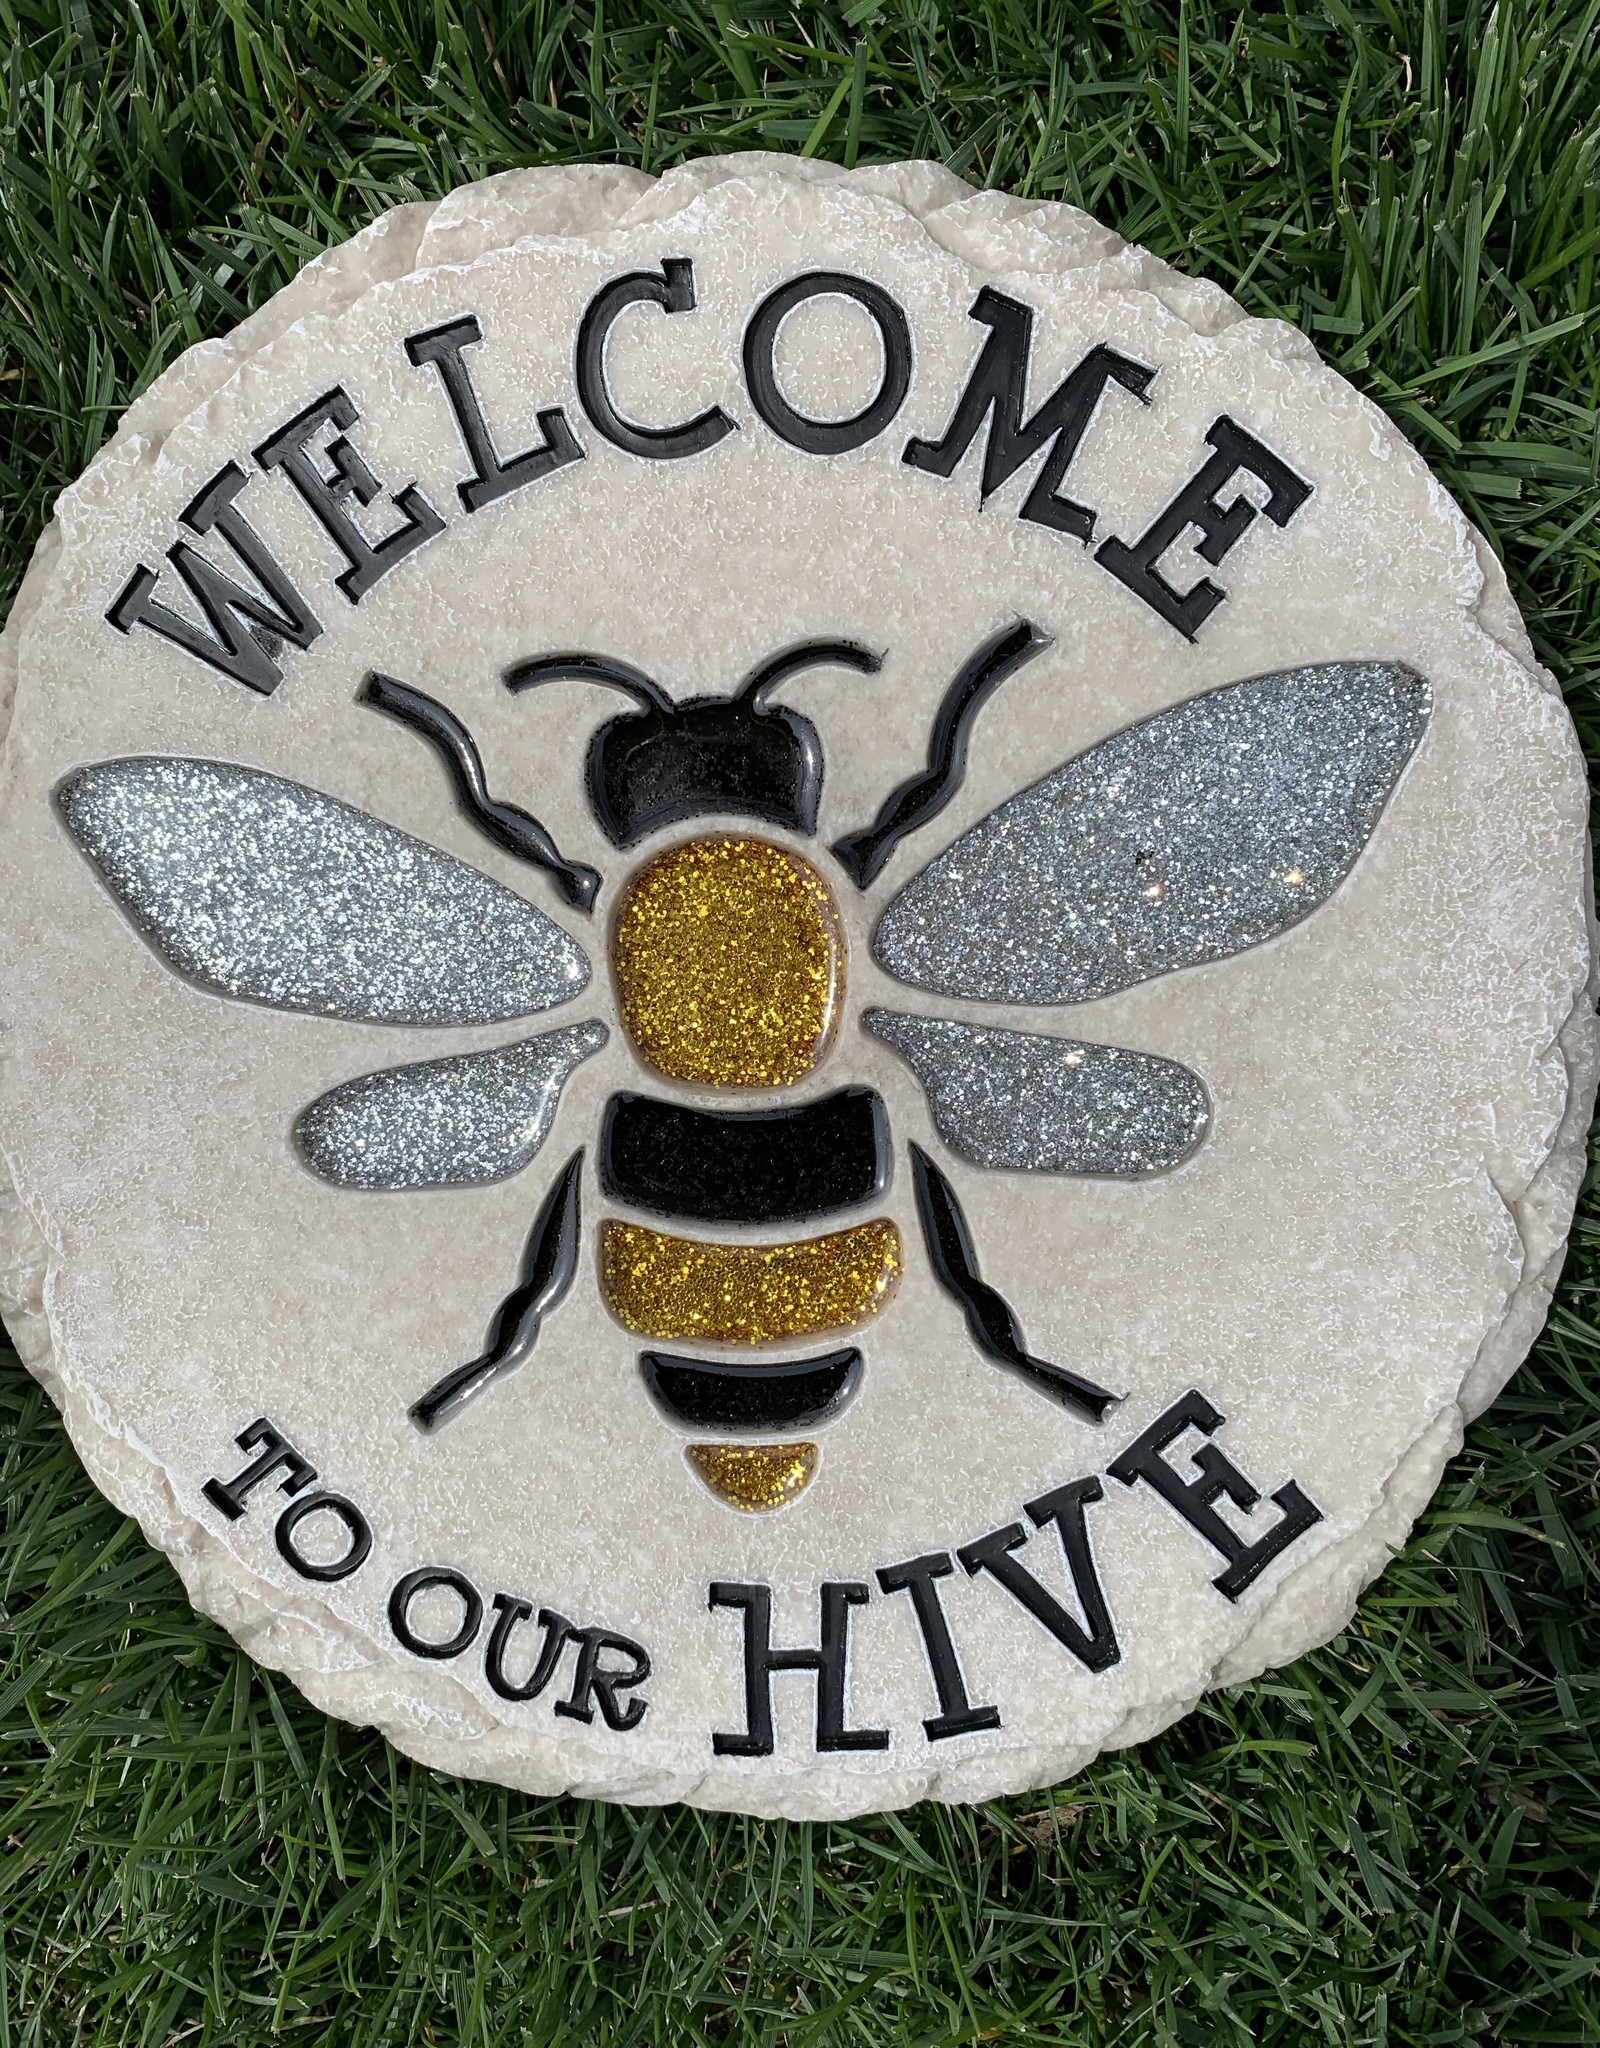 SPOONTIQUES, INC. WELCOME TO OUR HIVE STEPPING STONE